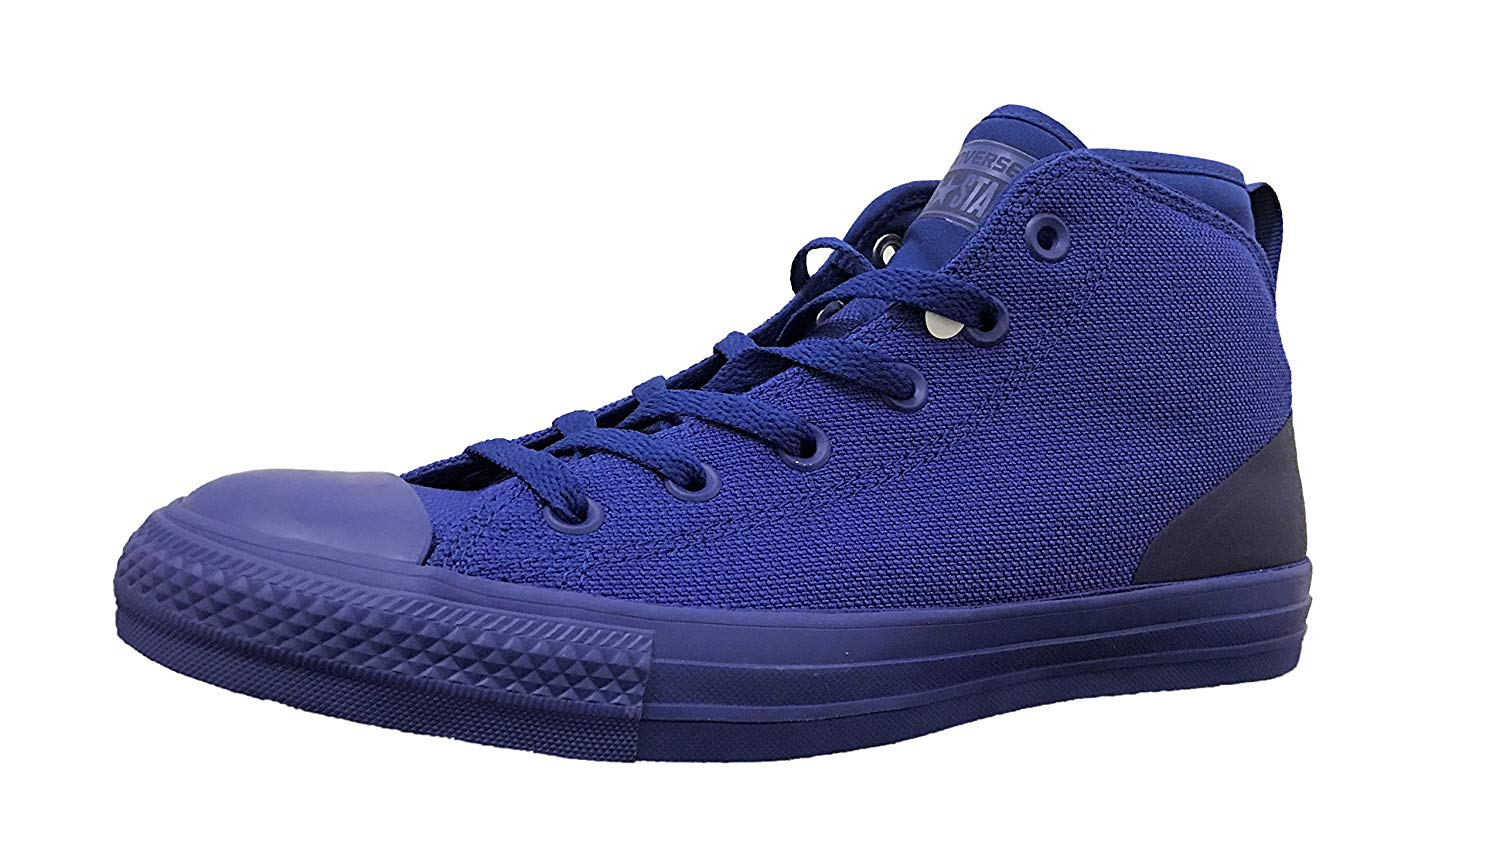 Converse Unisex Mens Chuck Taylor All Star Syde Street Mid Fashion ... 28dced6b1